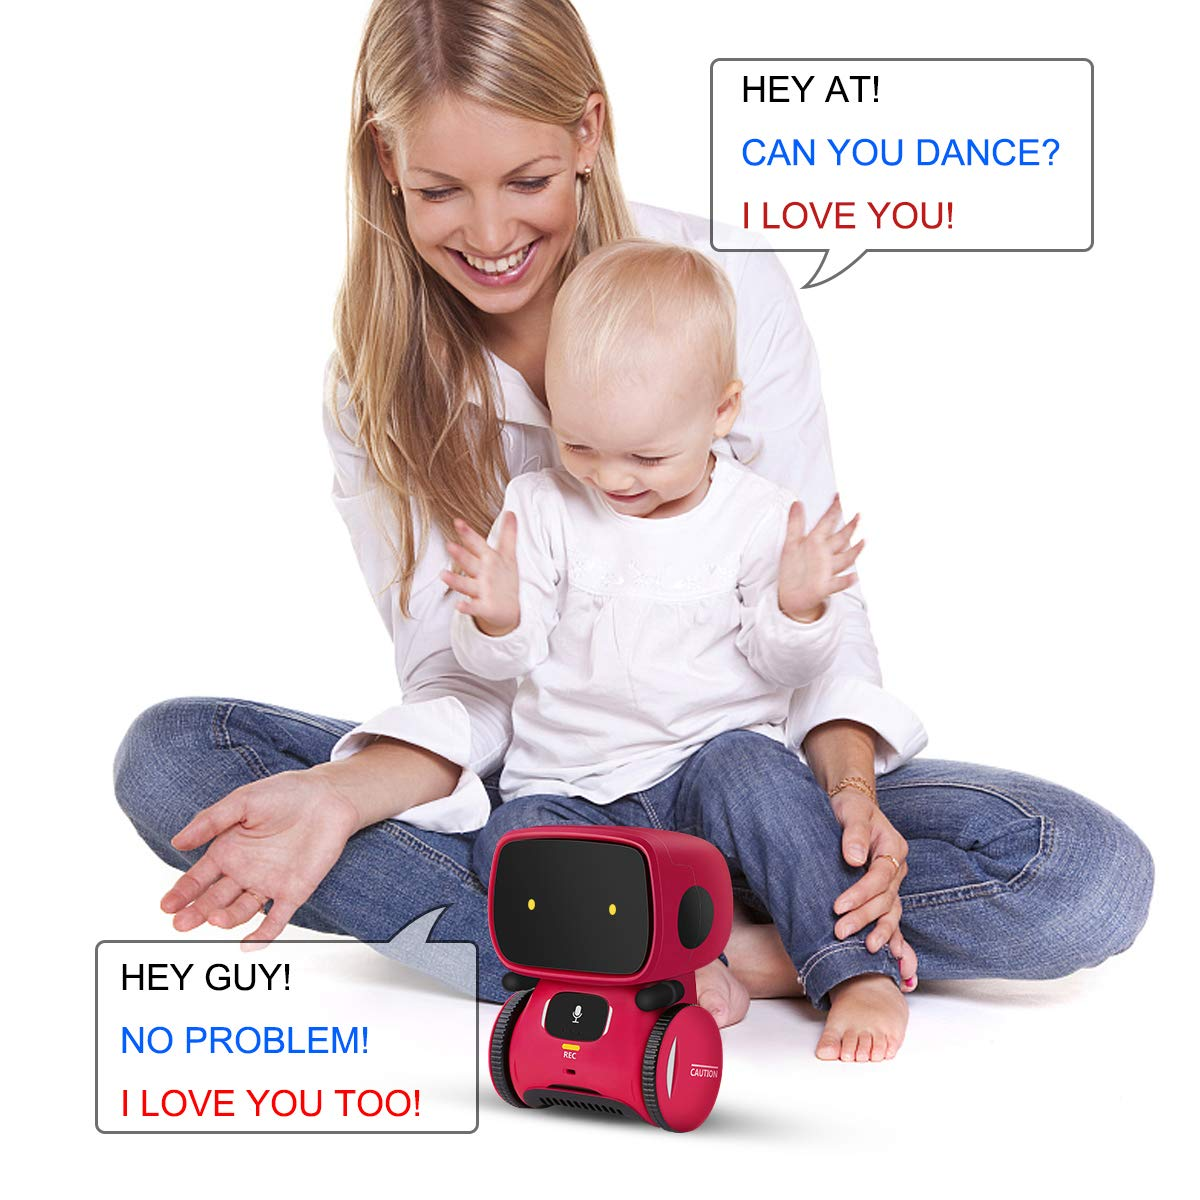 Kids Robot Toy, Smart Talking Robots, Gift for Boys and Girls Age 3+, Intelligent partner and teacher, with Voice Controlled and Touch Sensor, Singing, Dancing, Repeating by 98K (Image #4)